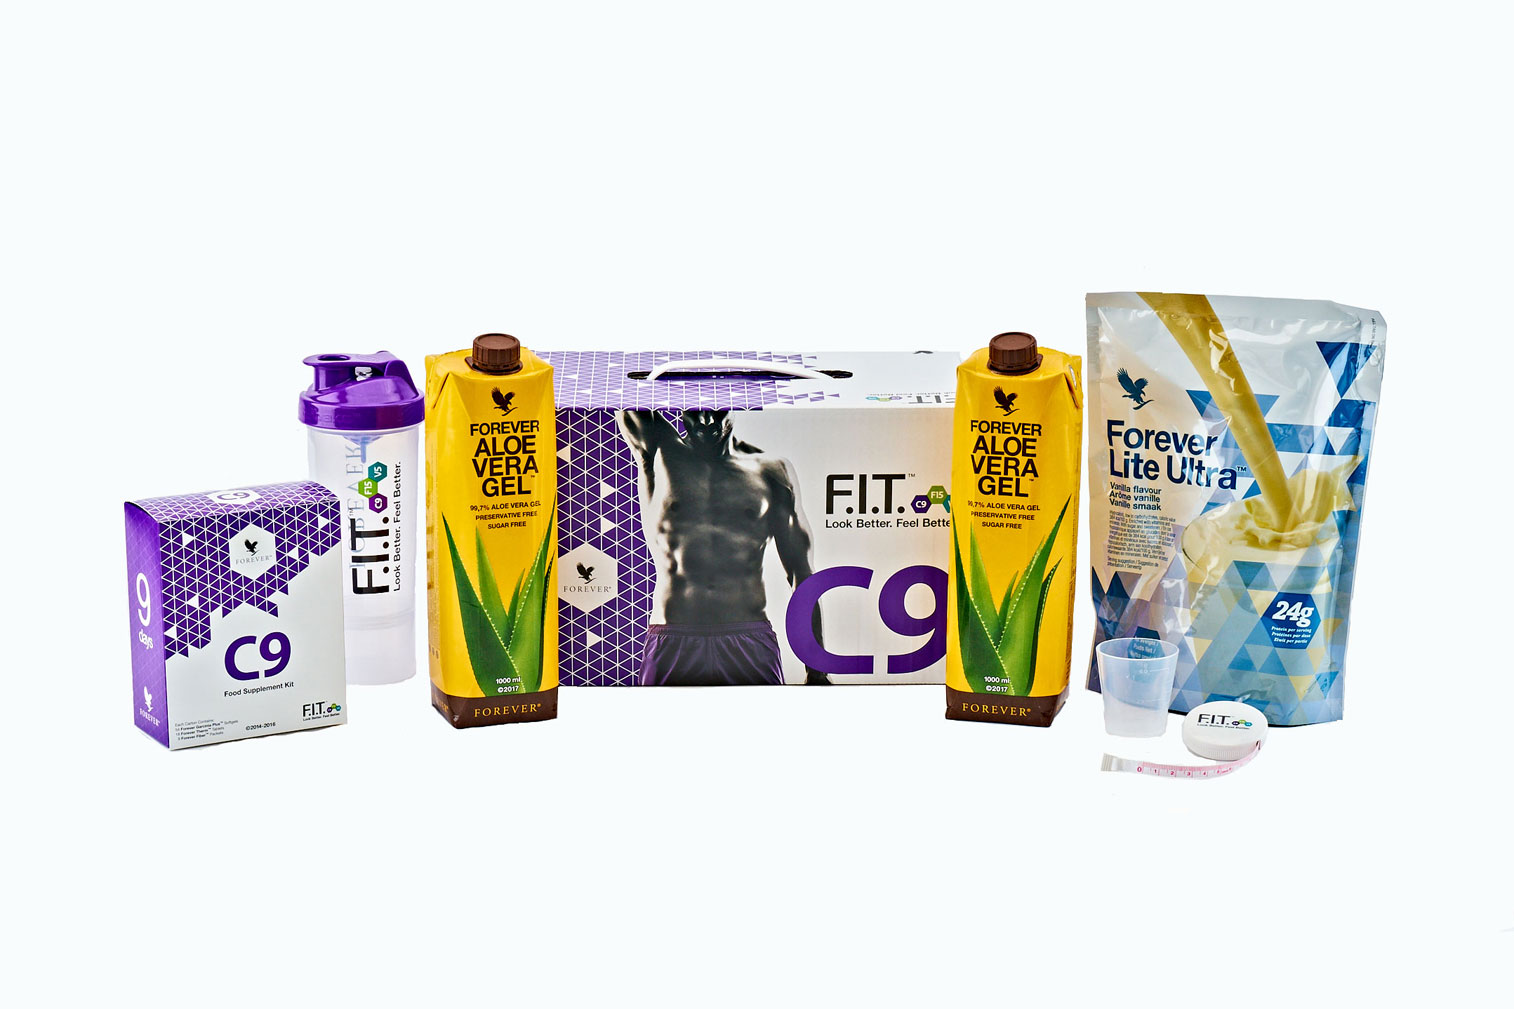 Look better and feel great in just nine days with this expertly-devised calorie-controlled diet and exercise programme. Designed to kick-start the F.I.T. programme, prepare your body and adjust your mindset, C9 provides the perfect starting point for transforming your diet and fitness habits. Based around Forever's bestselling Forever Aloe Vera Gel, this nutritionally-balanced programme will allow you to see real results in just nine days.